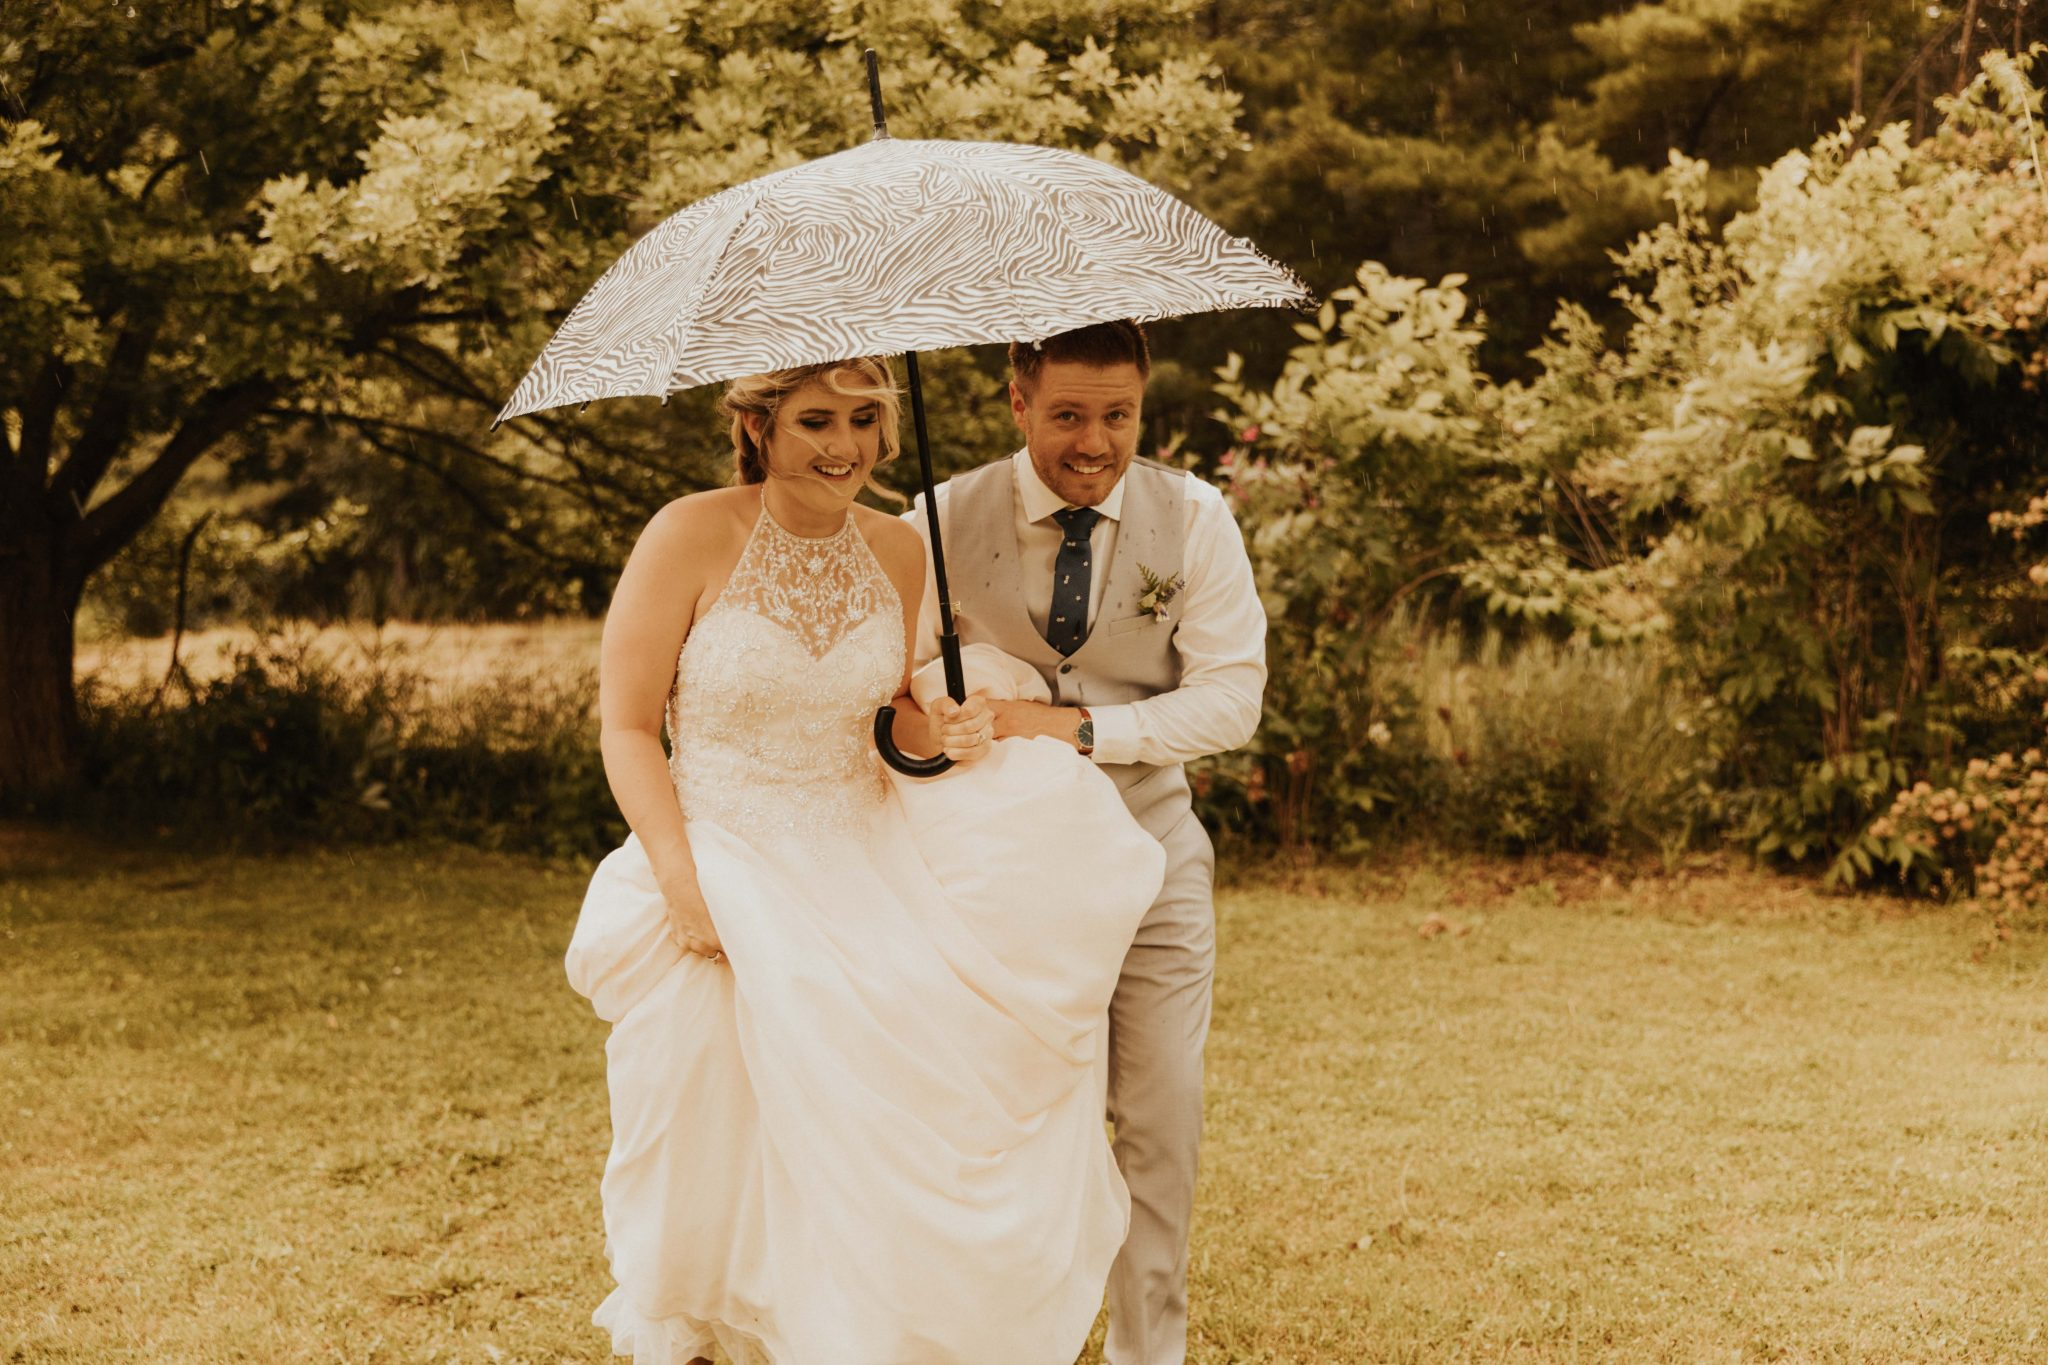 wedding photos with umbrella